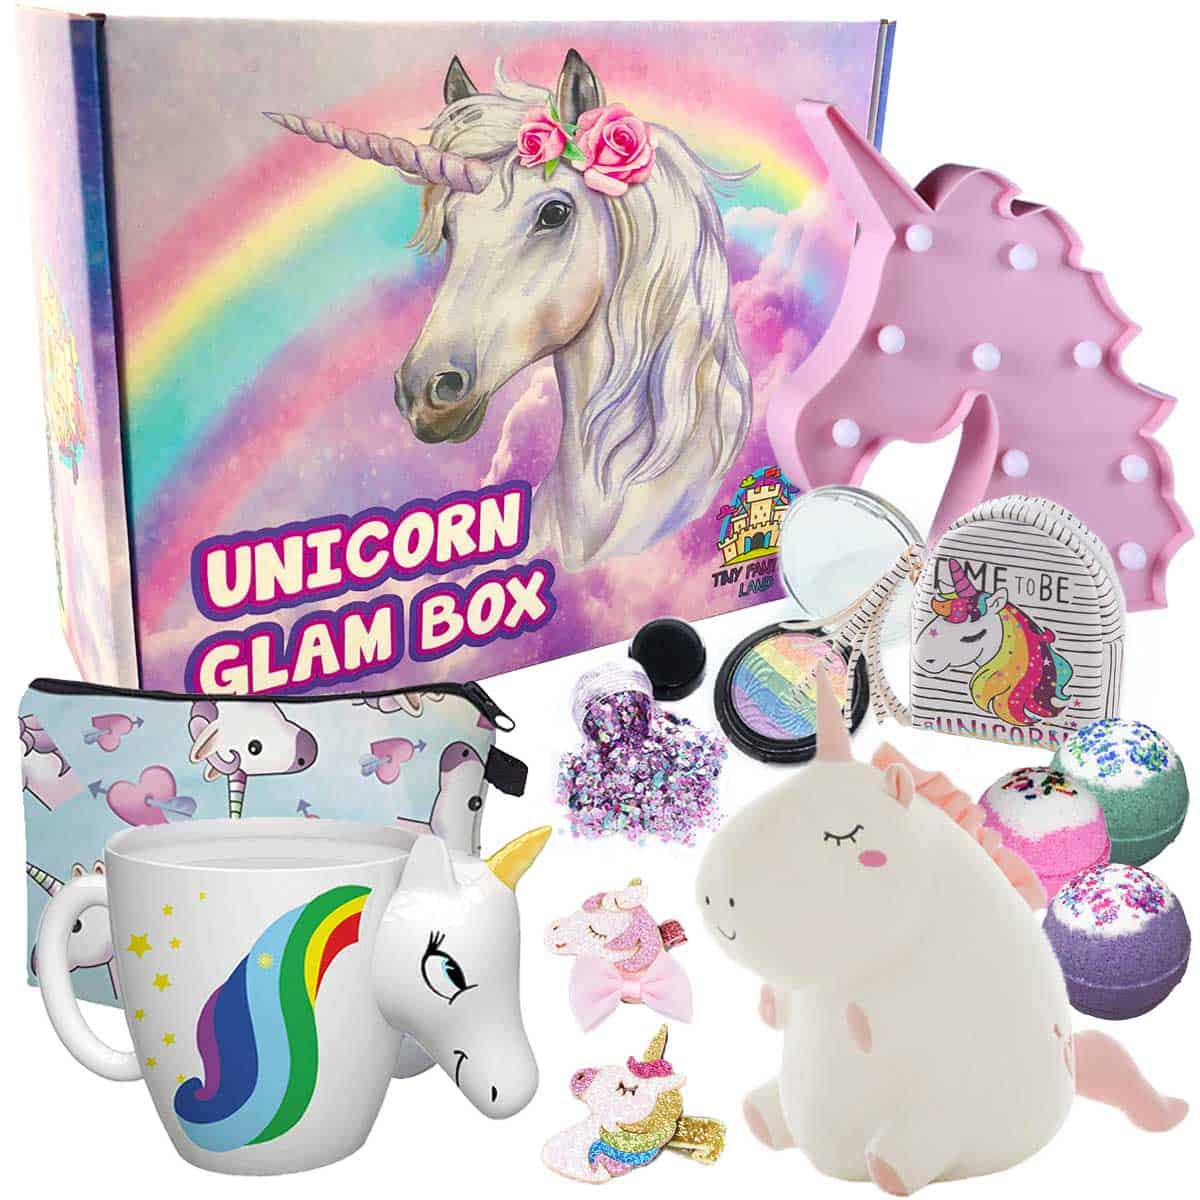 Unicorn Glam Box